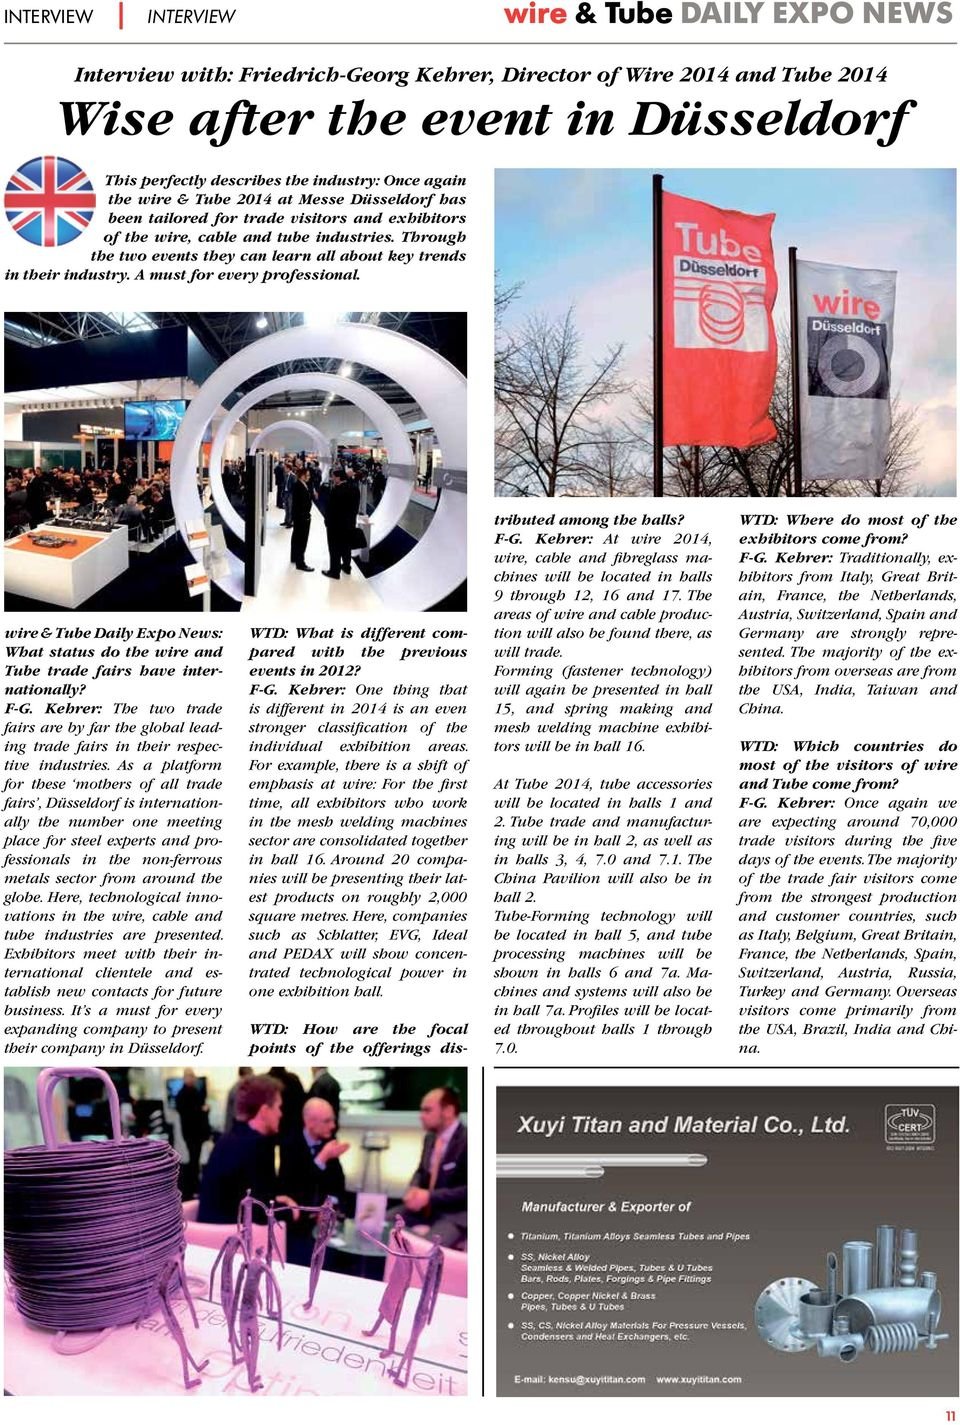 A must for every professional. & Daily Expo News: What status do the and trade fairs have internationally? F-G.